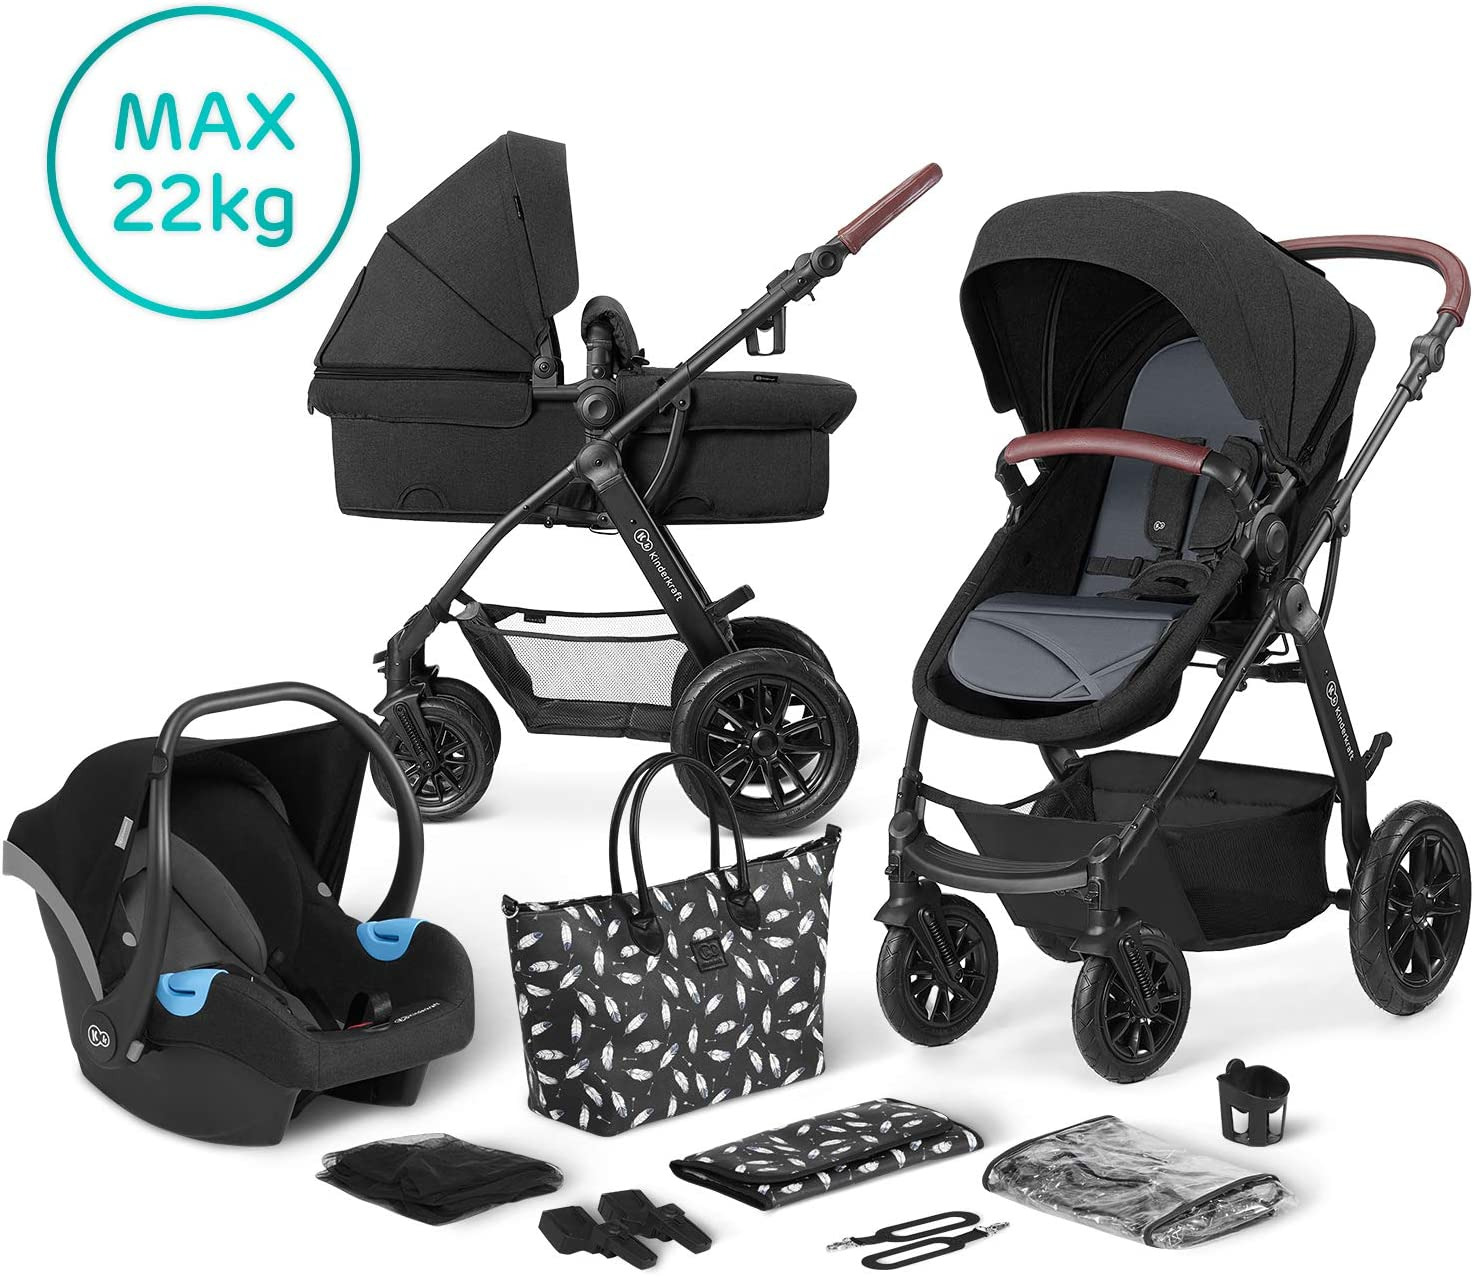 Carrycot Buggy Rain Cover Kinderkraft Pram 3 in 1 Set XMOOV with Infant Car Seat Black Accessories Travel System Footmuff for Newborn 0-13 Kg Foldable Baby Pushchair from Birth to 3 Years